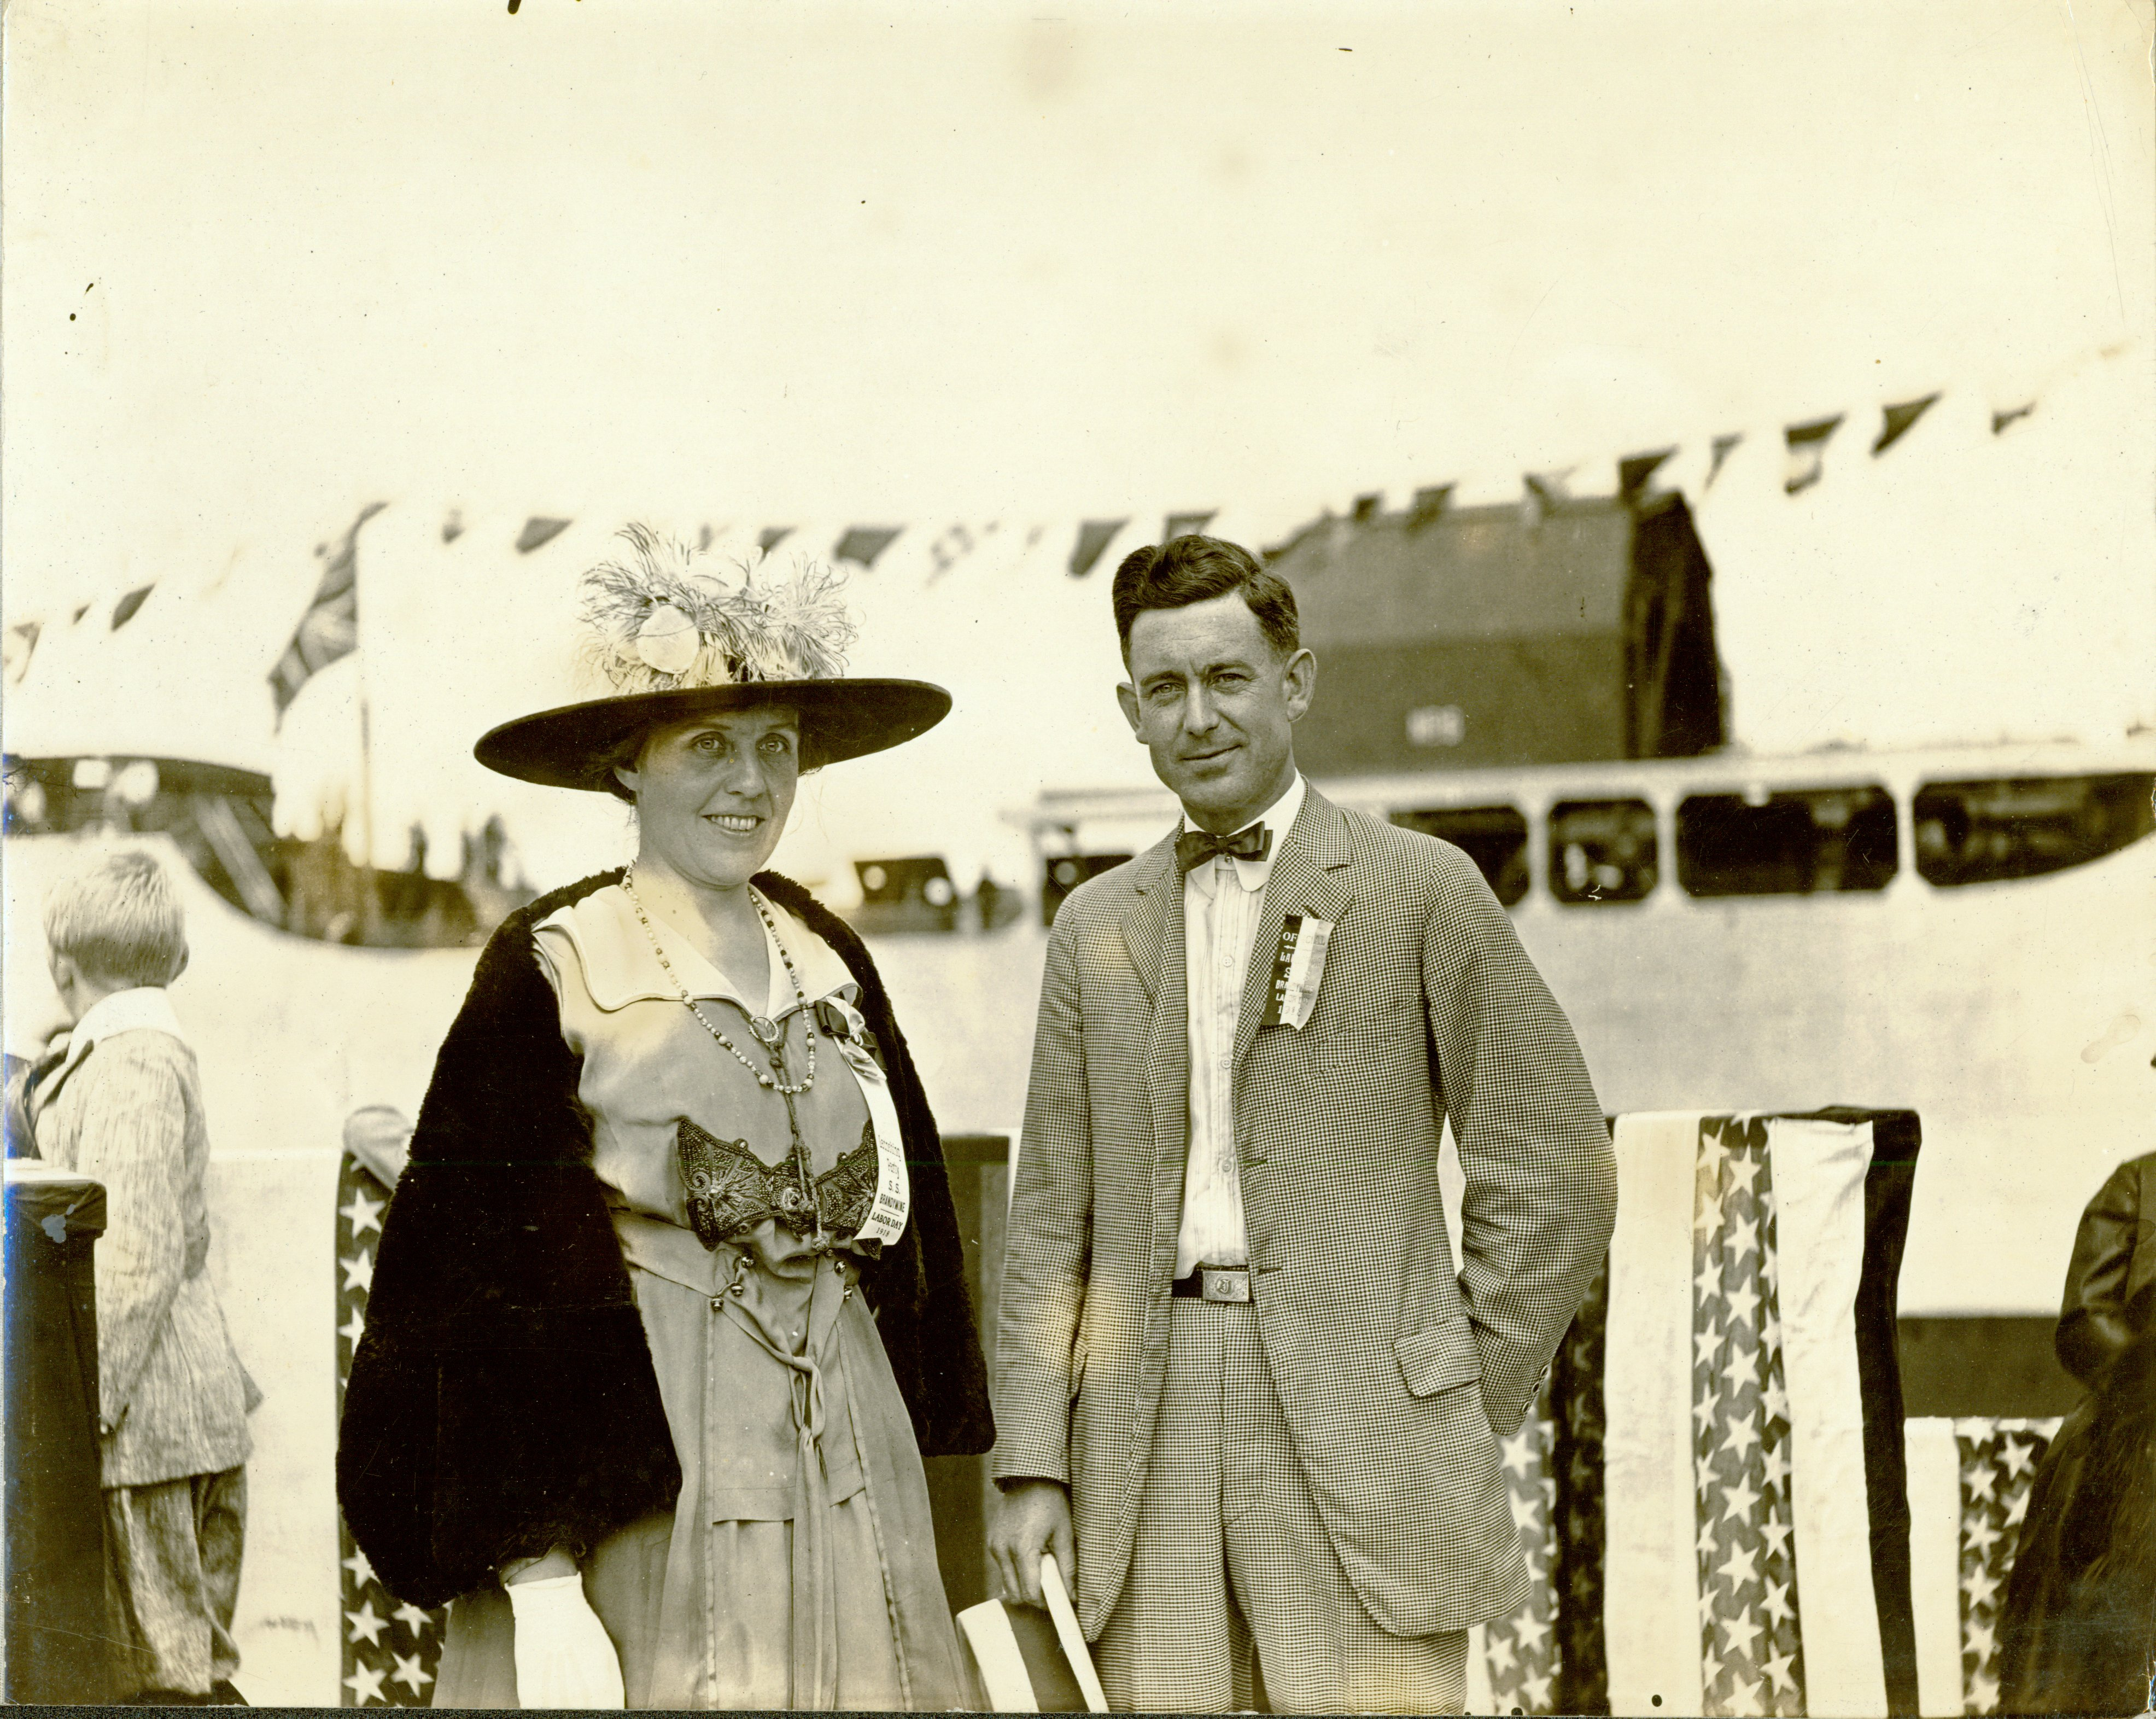 Black and white image of two people attending a ship launching.